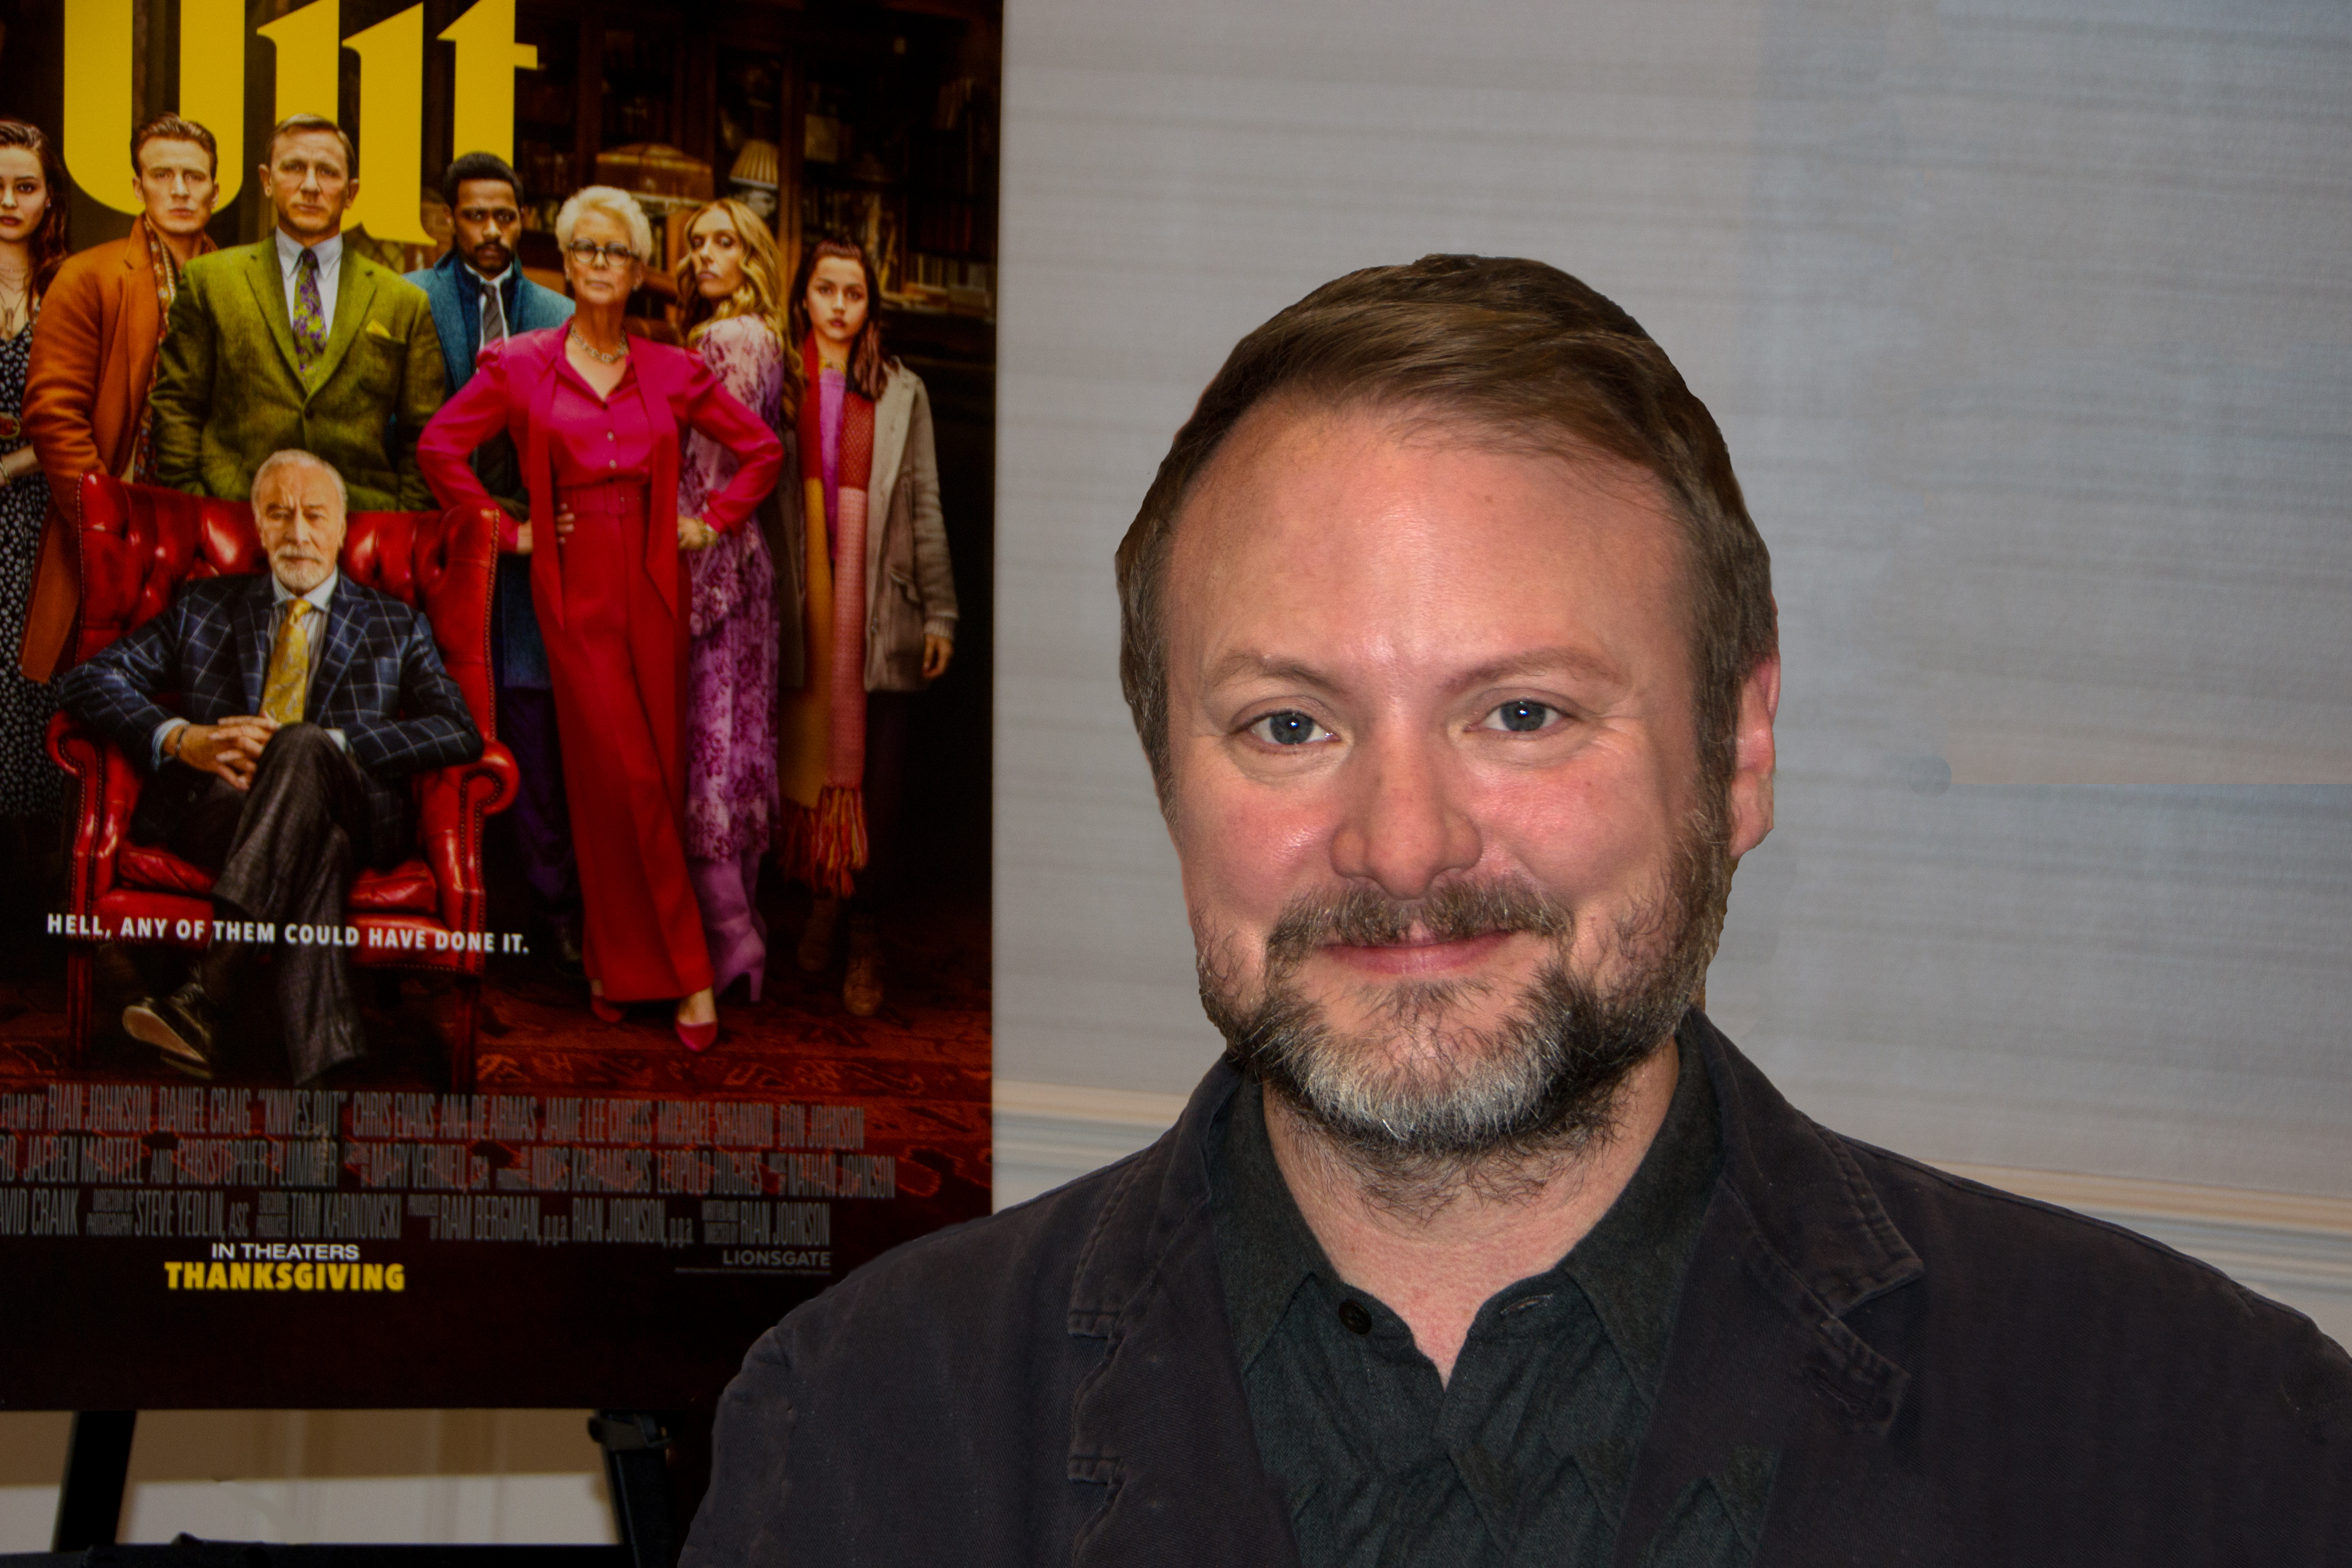 Caption: Rian Johnson, San Francisco, CA 11/11/19, Credit: Andrea Chase